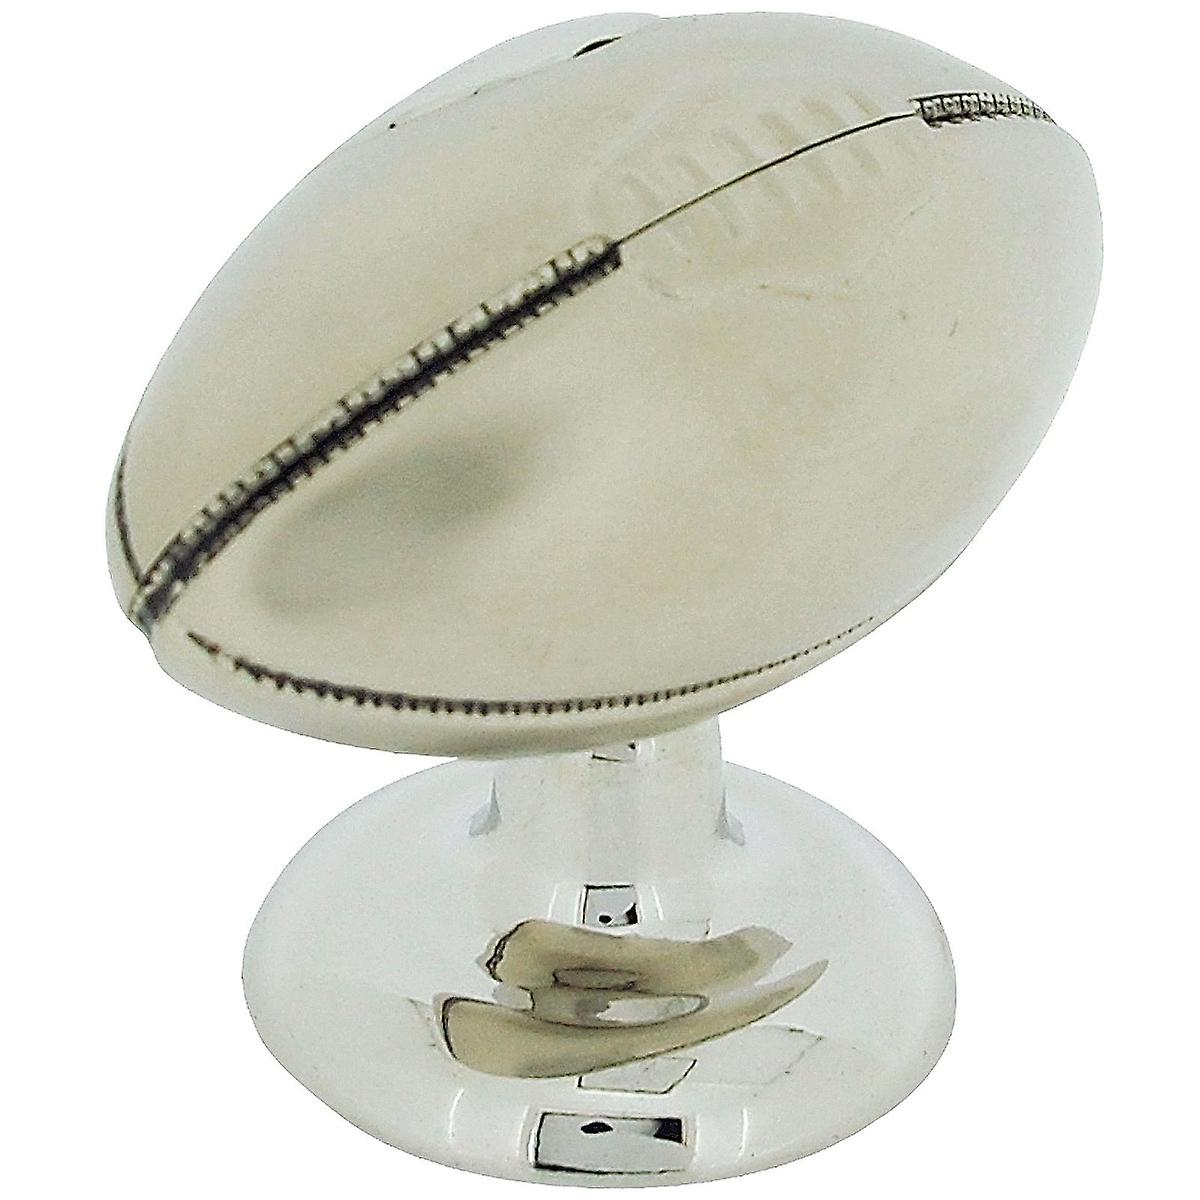 Free 9647s Ball Collectors Clock Desktop Rugby Standing Miniature Novelty q34RALcj5S